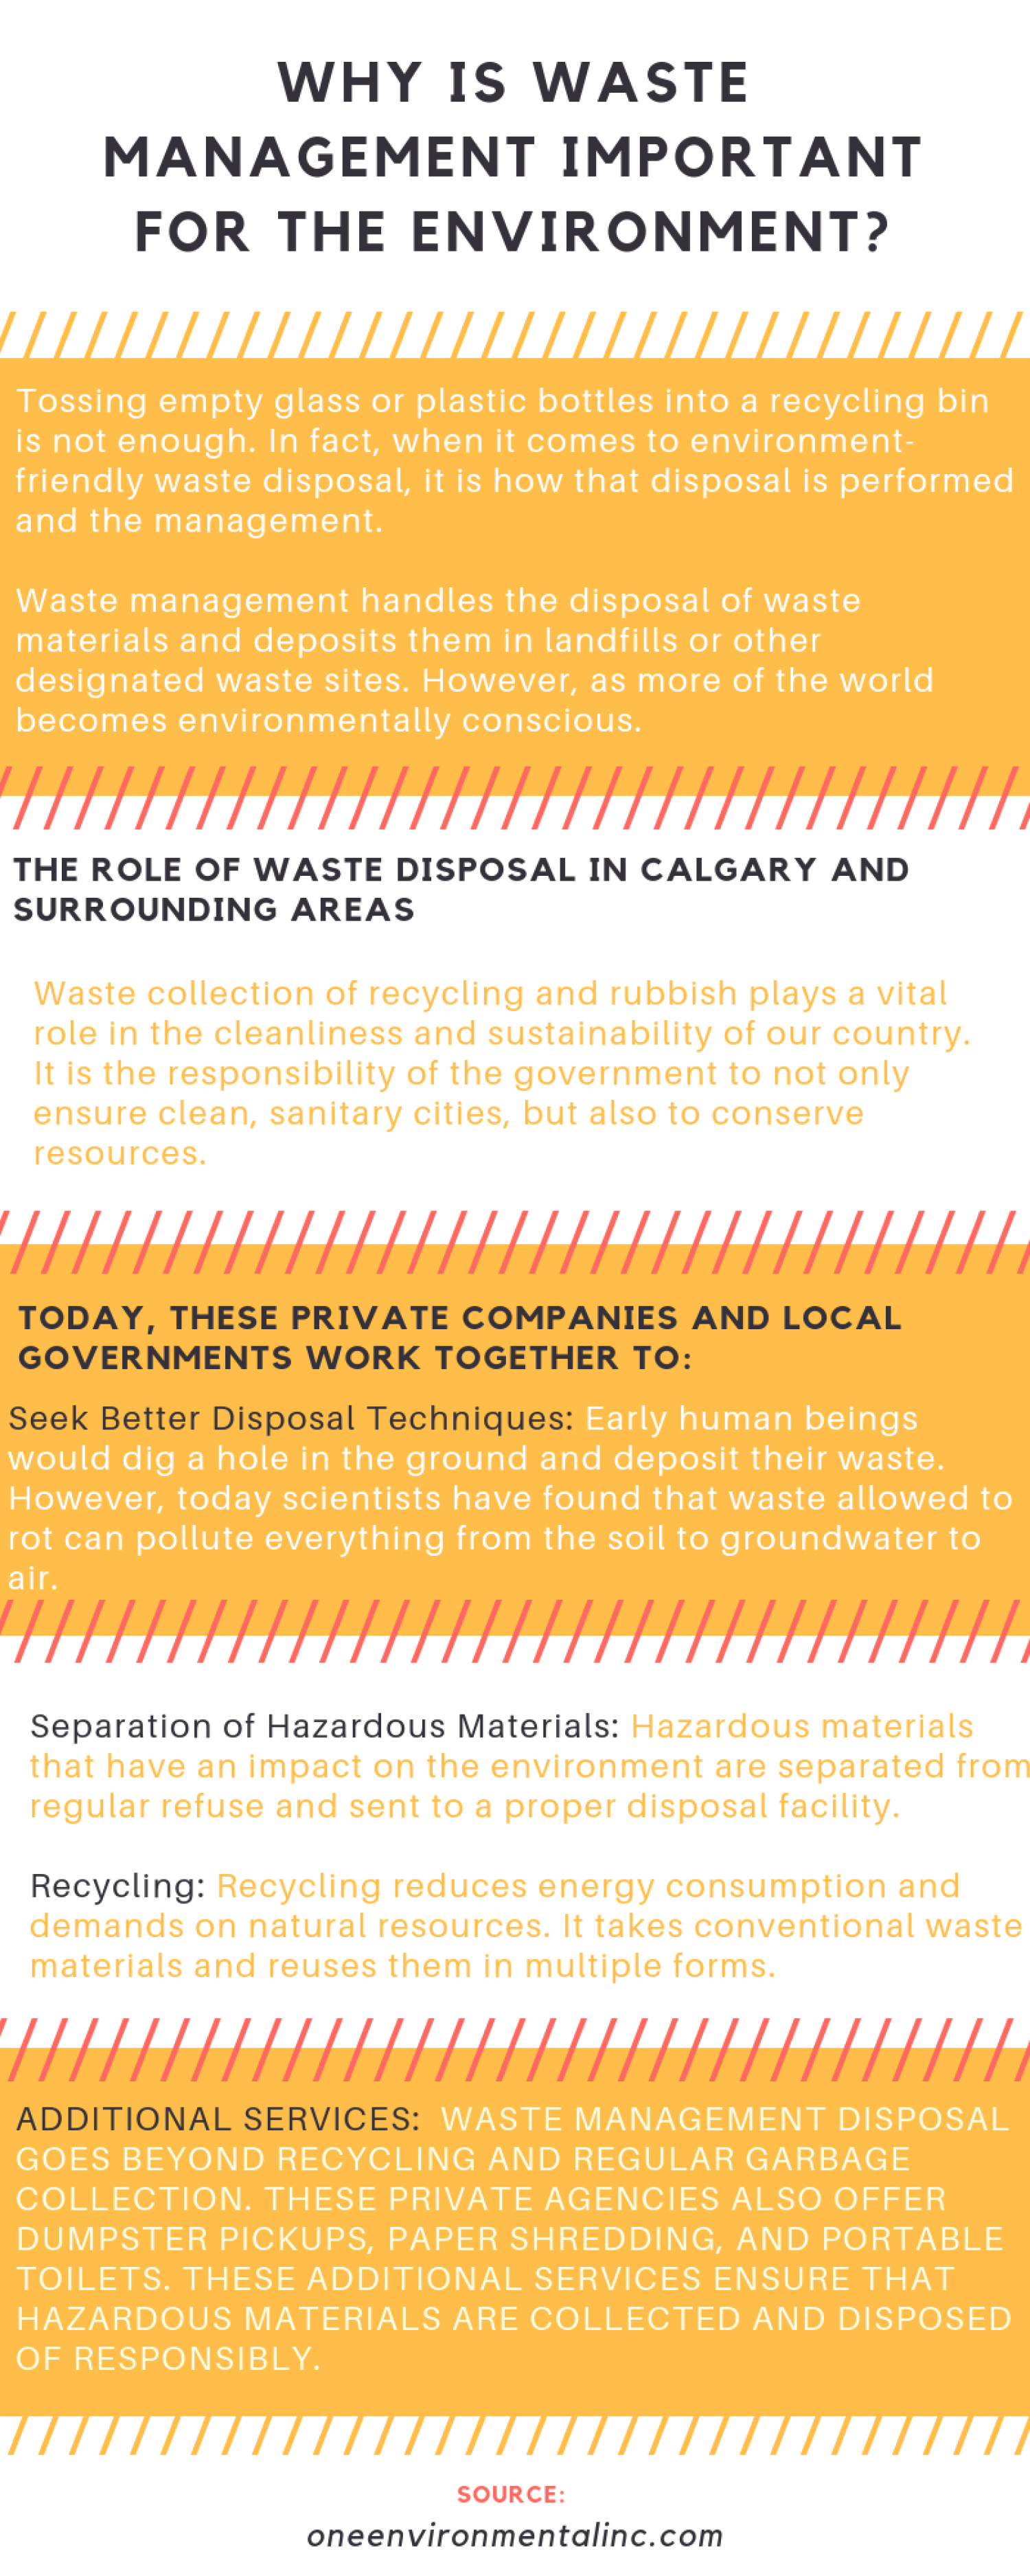 WHY IS WASTE MANAGEMENT IMPORTANT FOR THE ENVIRONMENT? Infographic